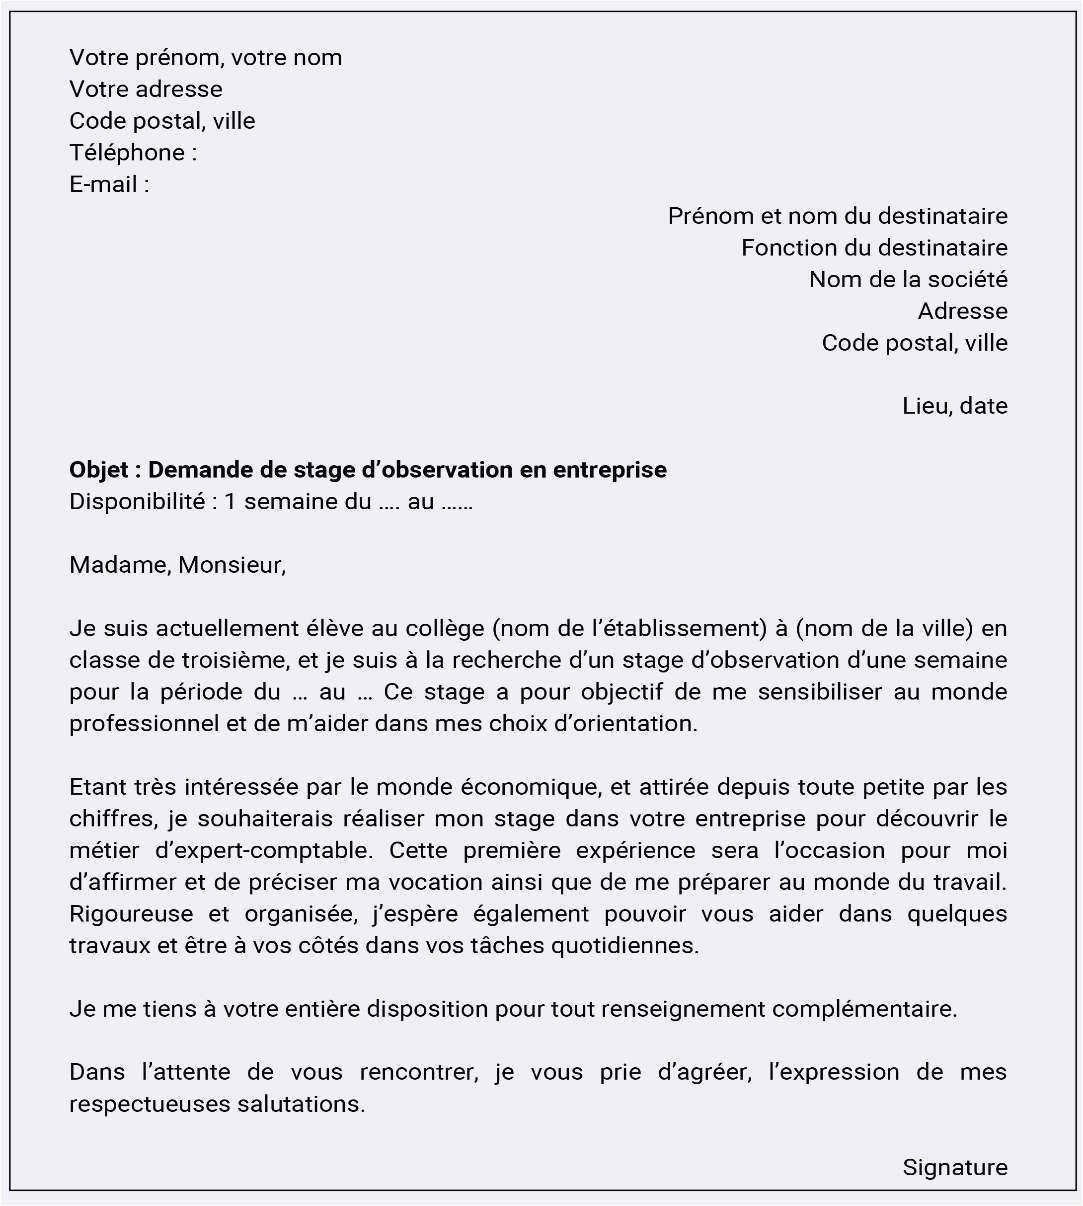 Lettre De Motivation Reconversion Professionnelle Mod¨le De Lettre De Motivation Pour Un Stage Professionnel